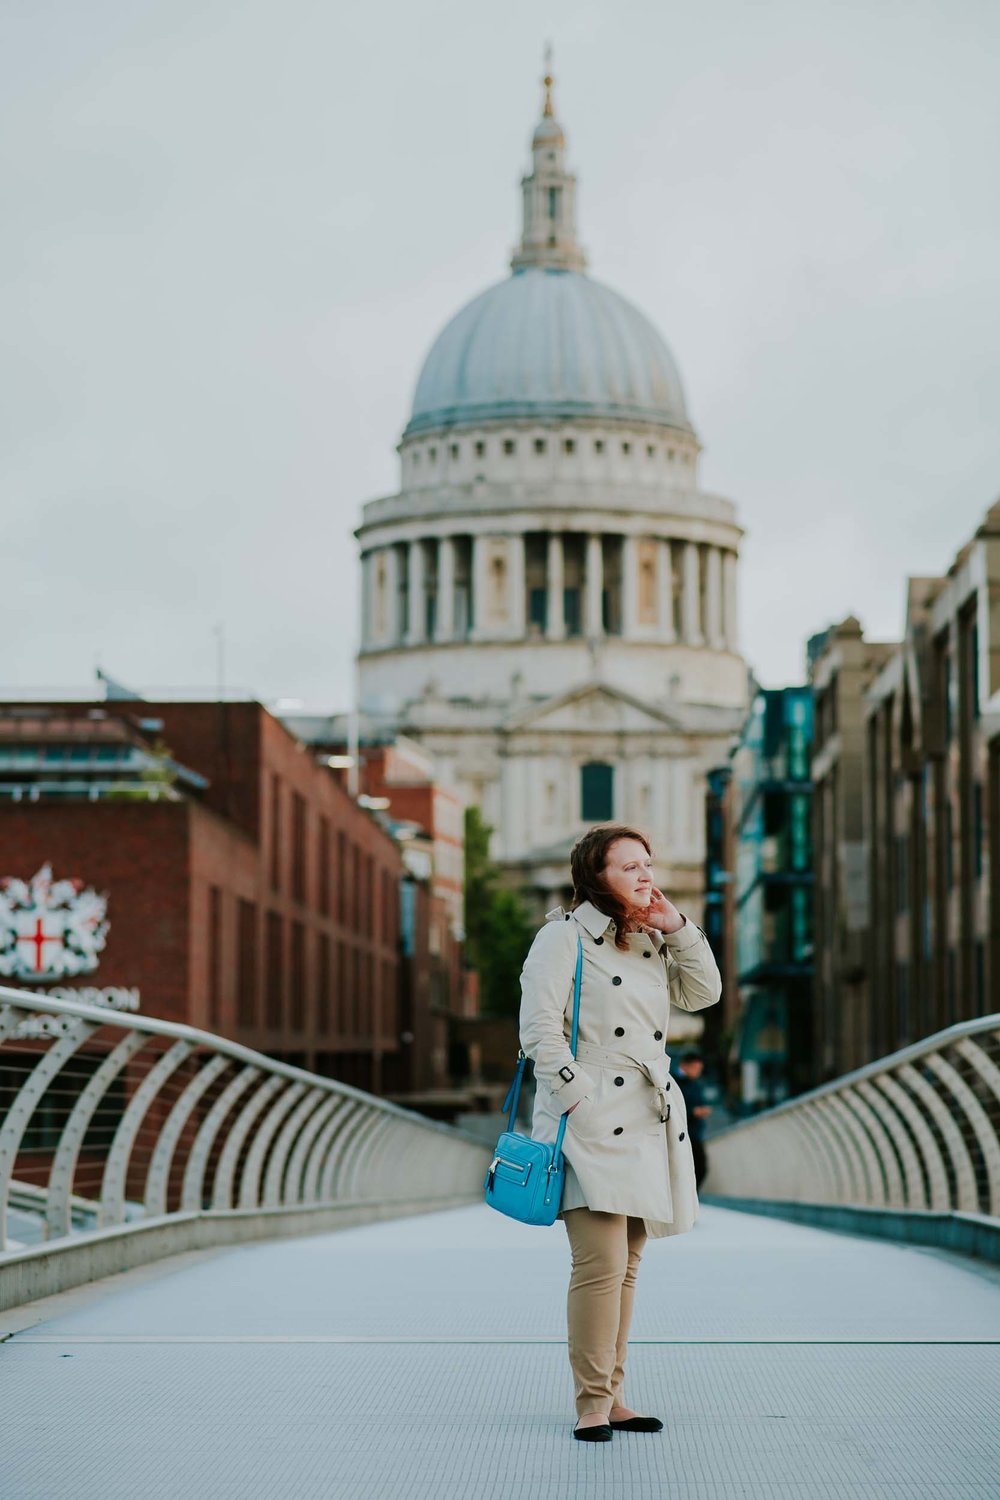 London vacation photographer